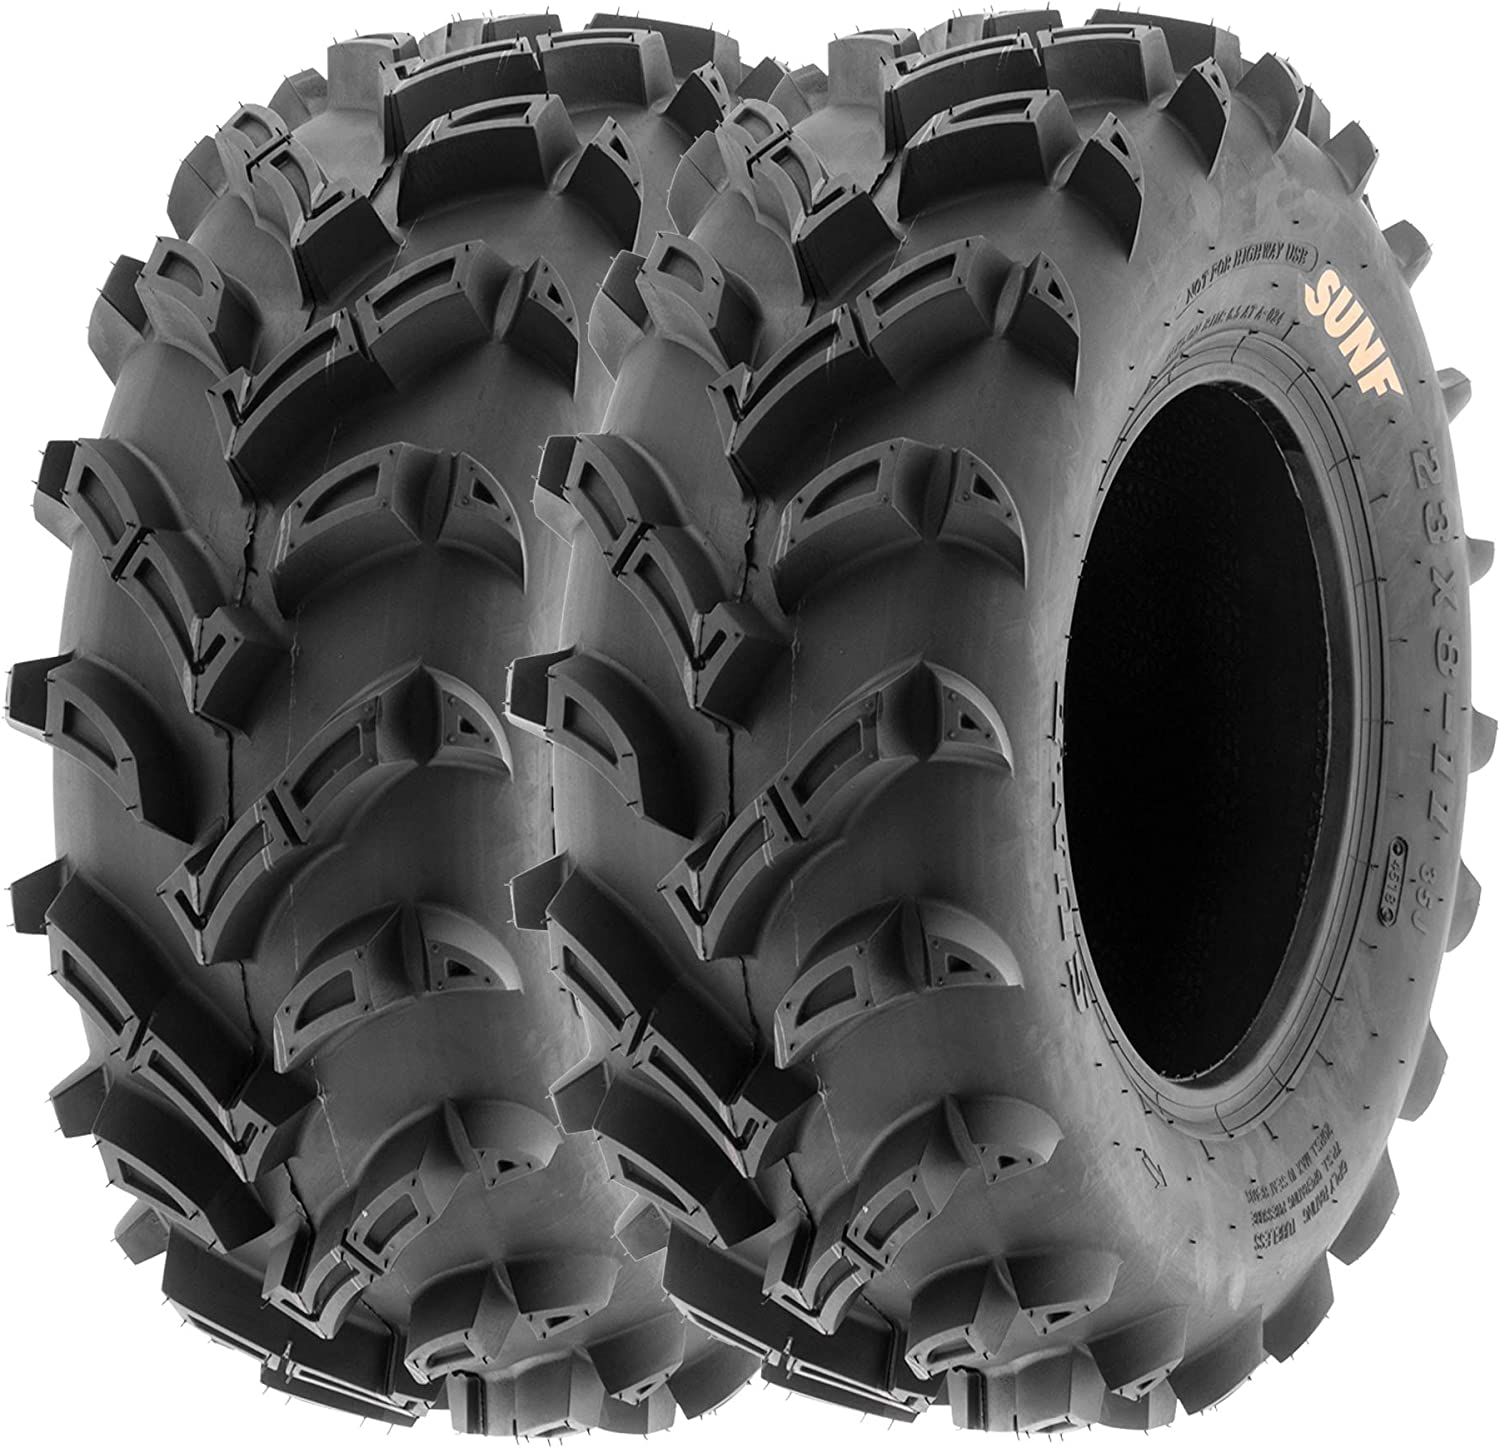 23x8-11 /& 24x9-11 Replacement ATV UTV SxS 6 Ply Tires A033 by SunF Set of 4